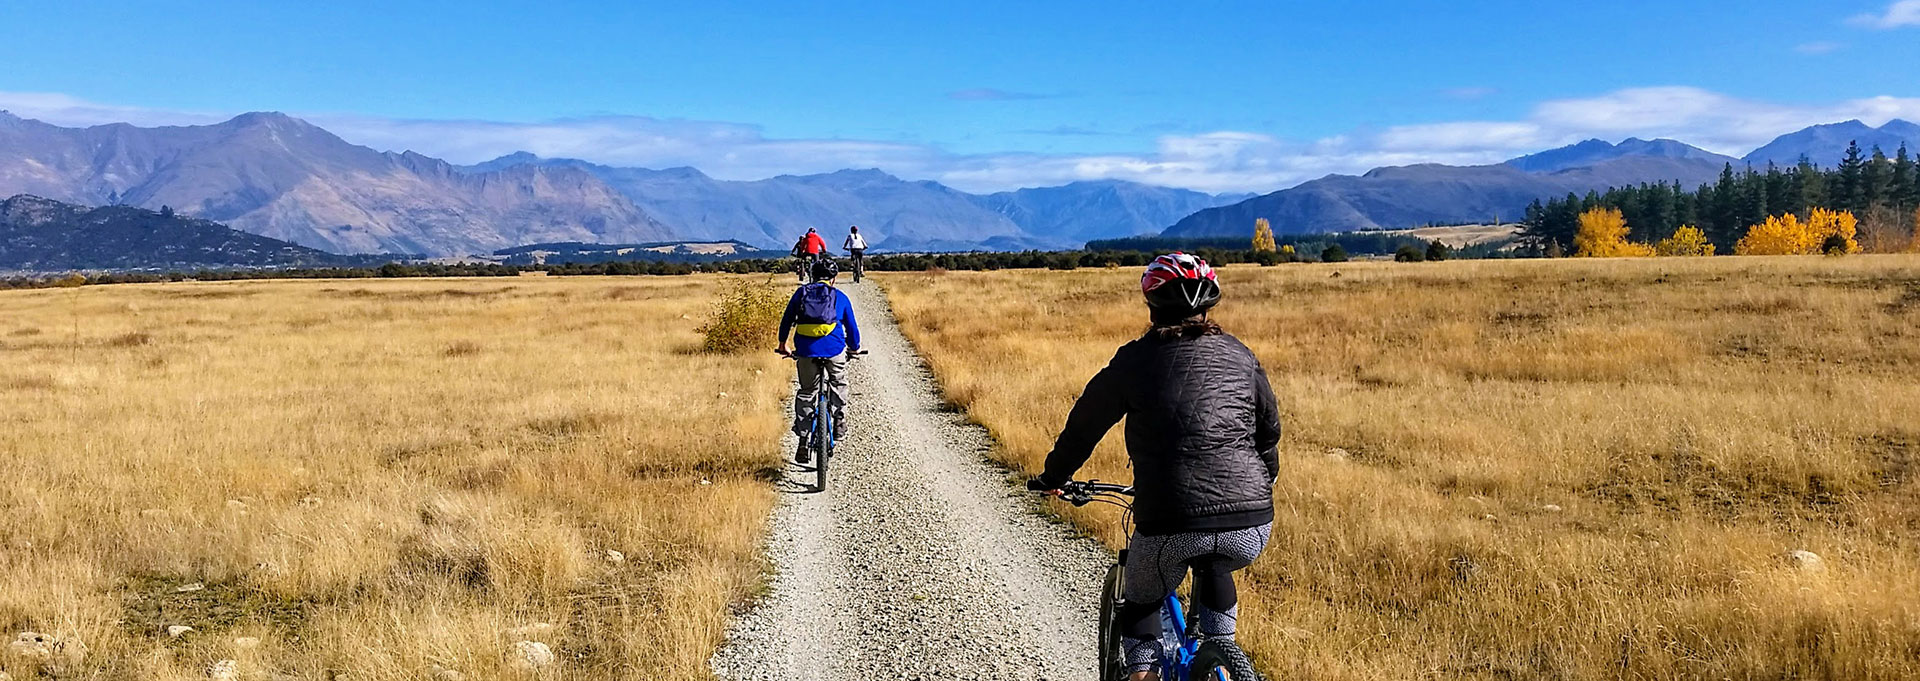 Easy Bike Tour| Guided Tours | Discover Wanaka